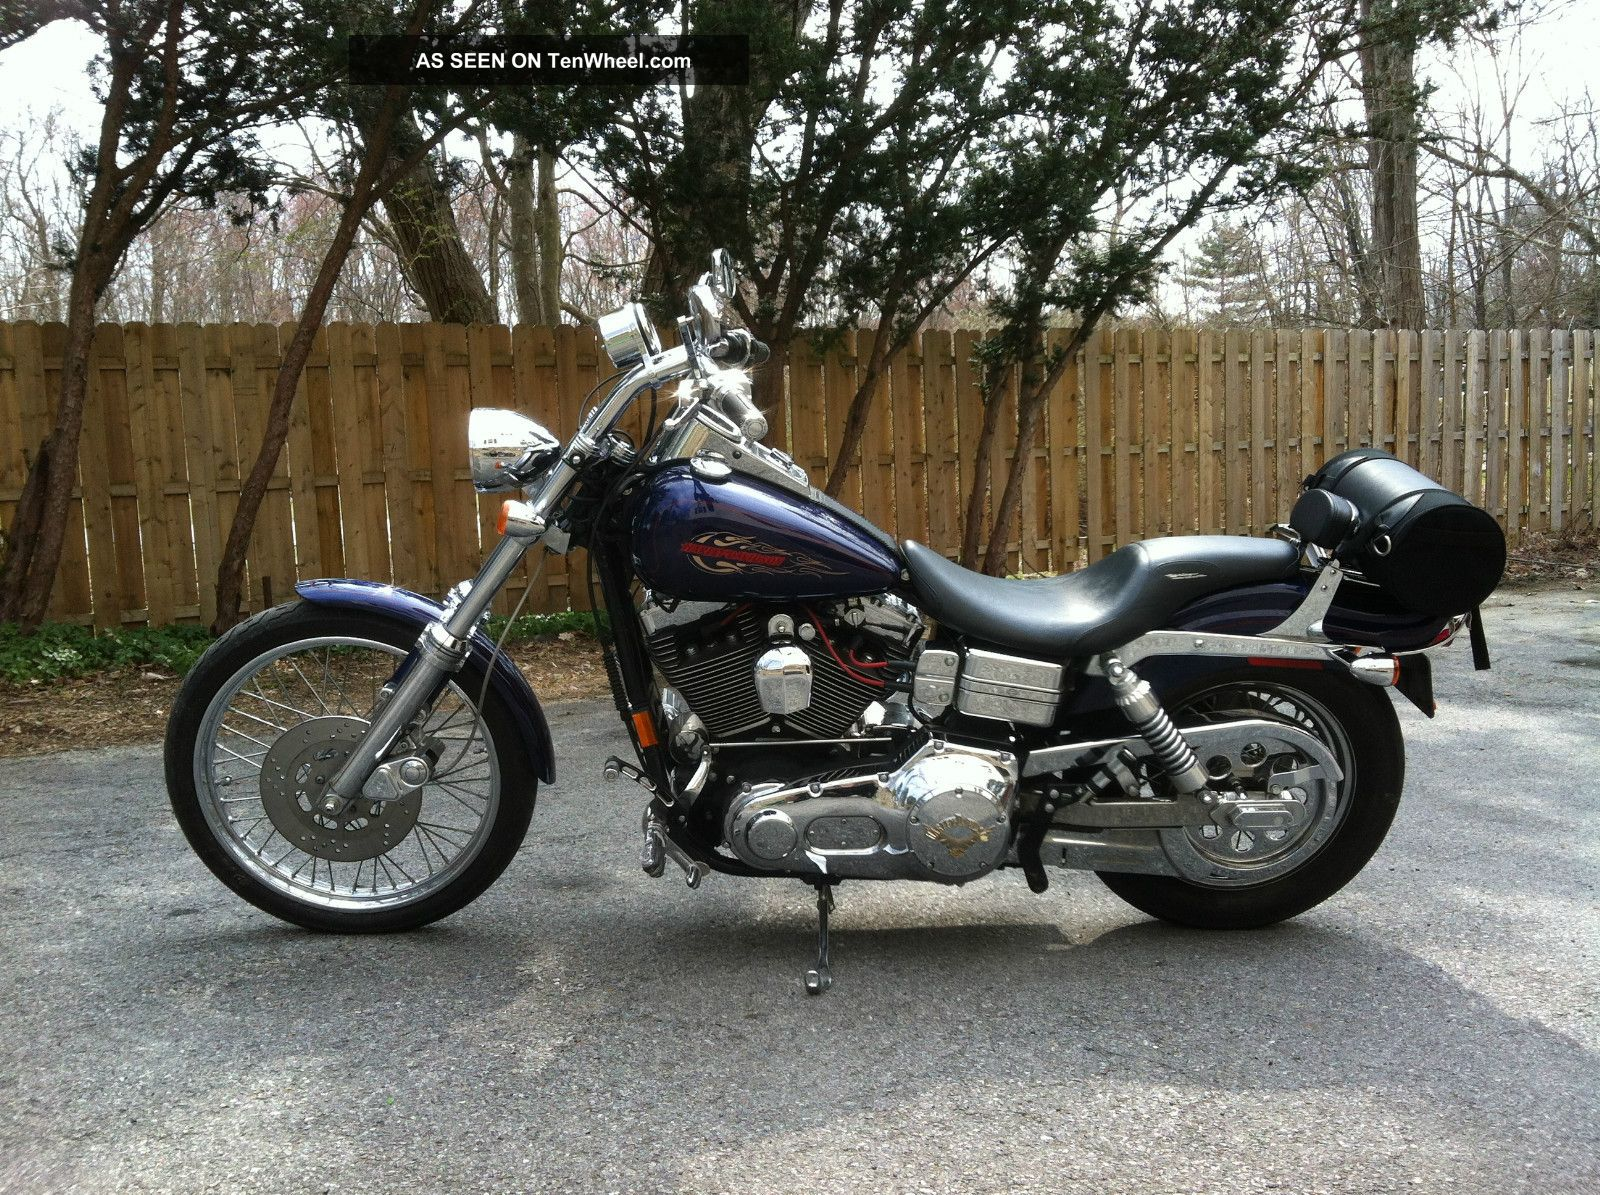 1994 Wide Glide Wiring Diagram | Wiring Schematic Diagram ... Harley Fxdwg Wiring Diagrams on